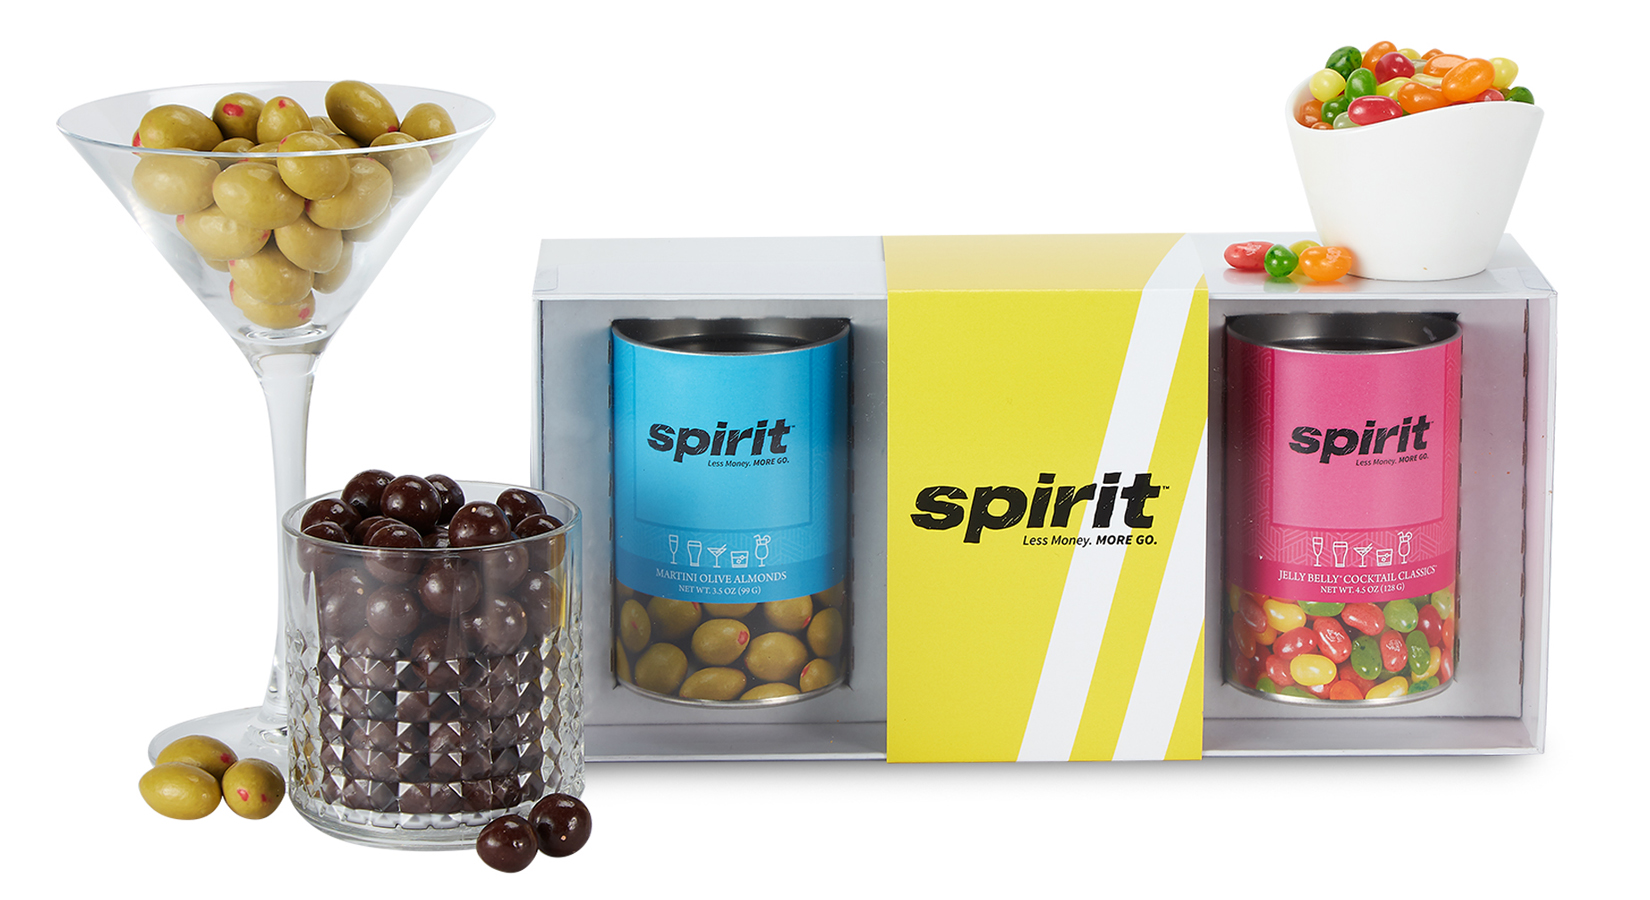 #25DaysOfGifting: Day 12 – Cocktail Inspired Sweet Treats & Snacks